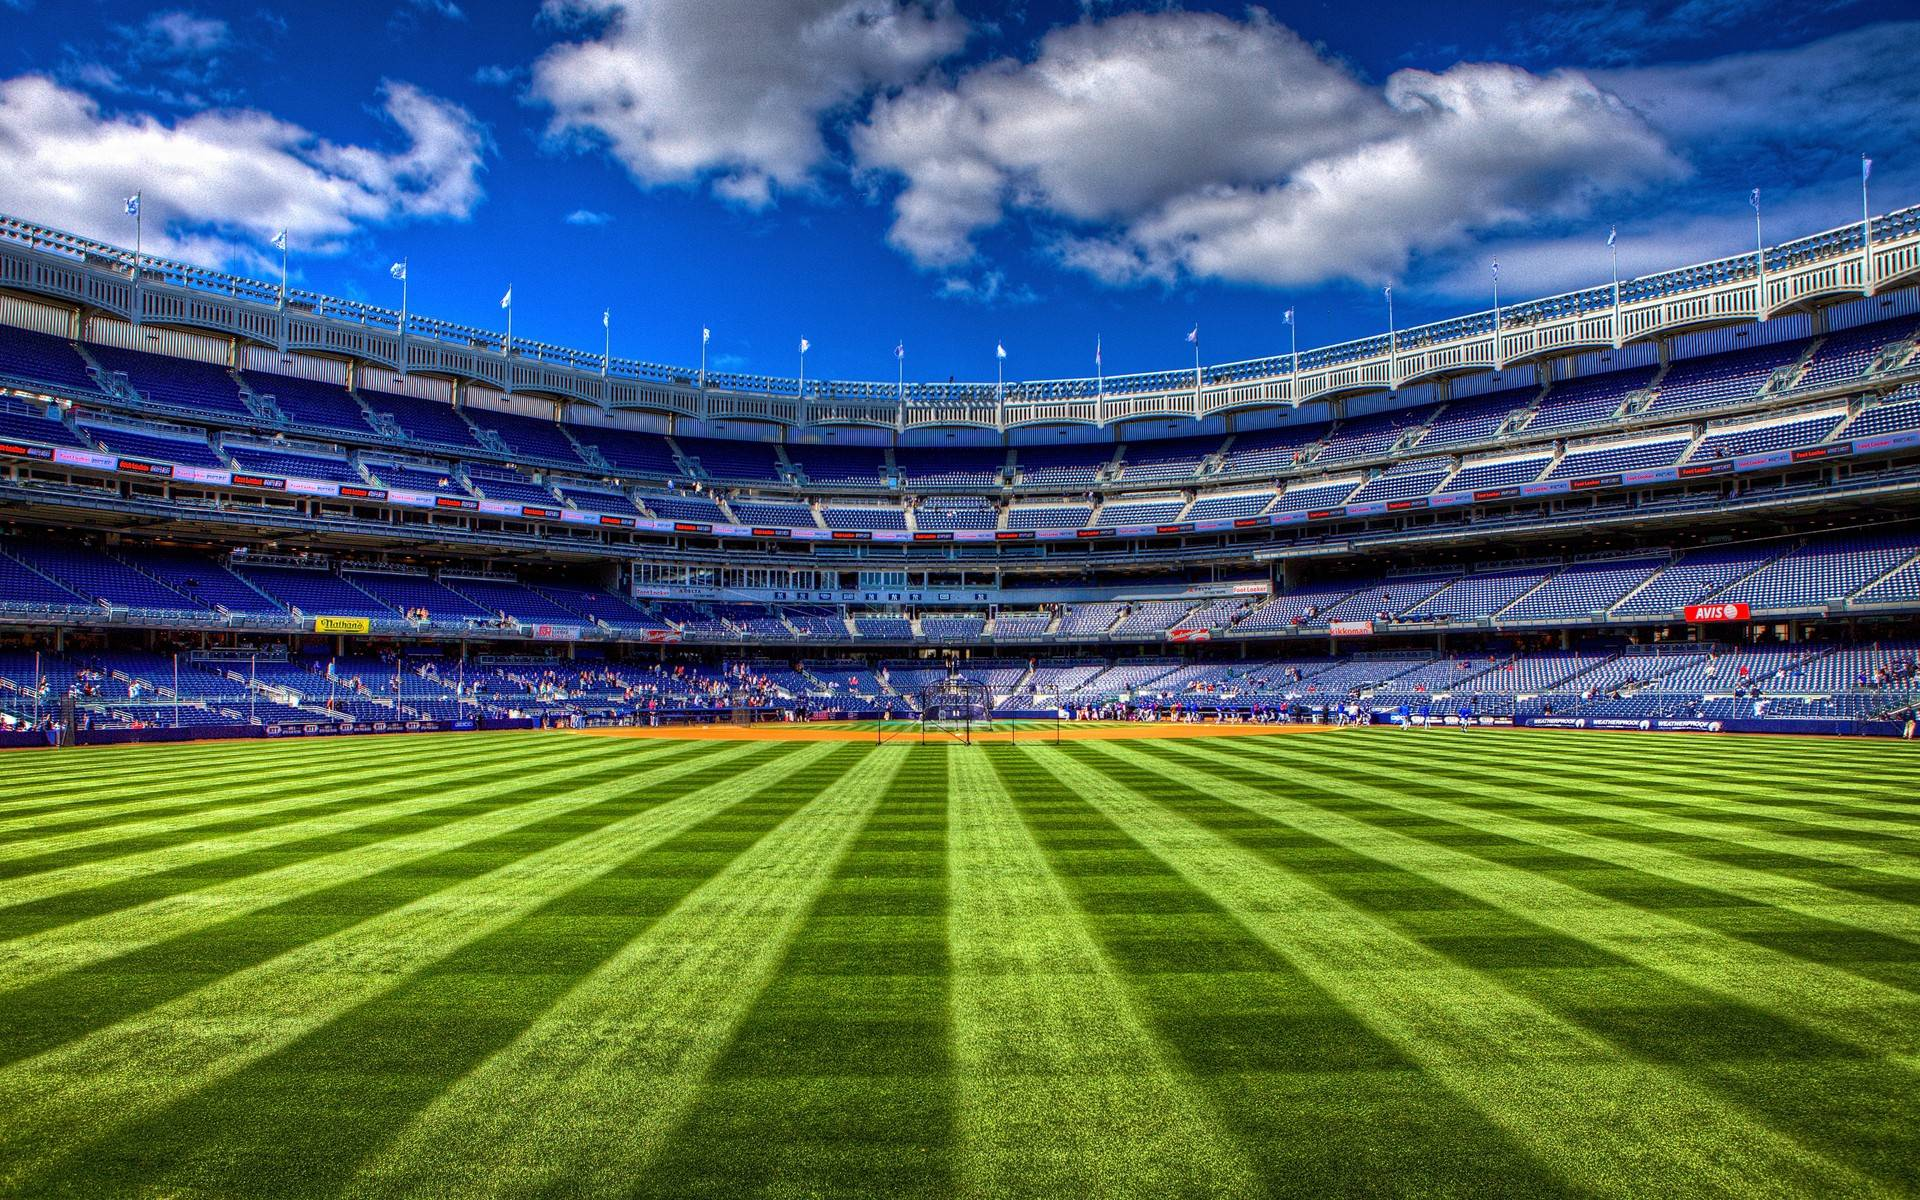 Download New York Yankees Wallpaper for android, New York Yankees 1920x1200